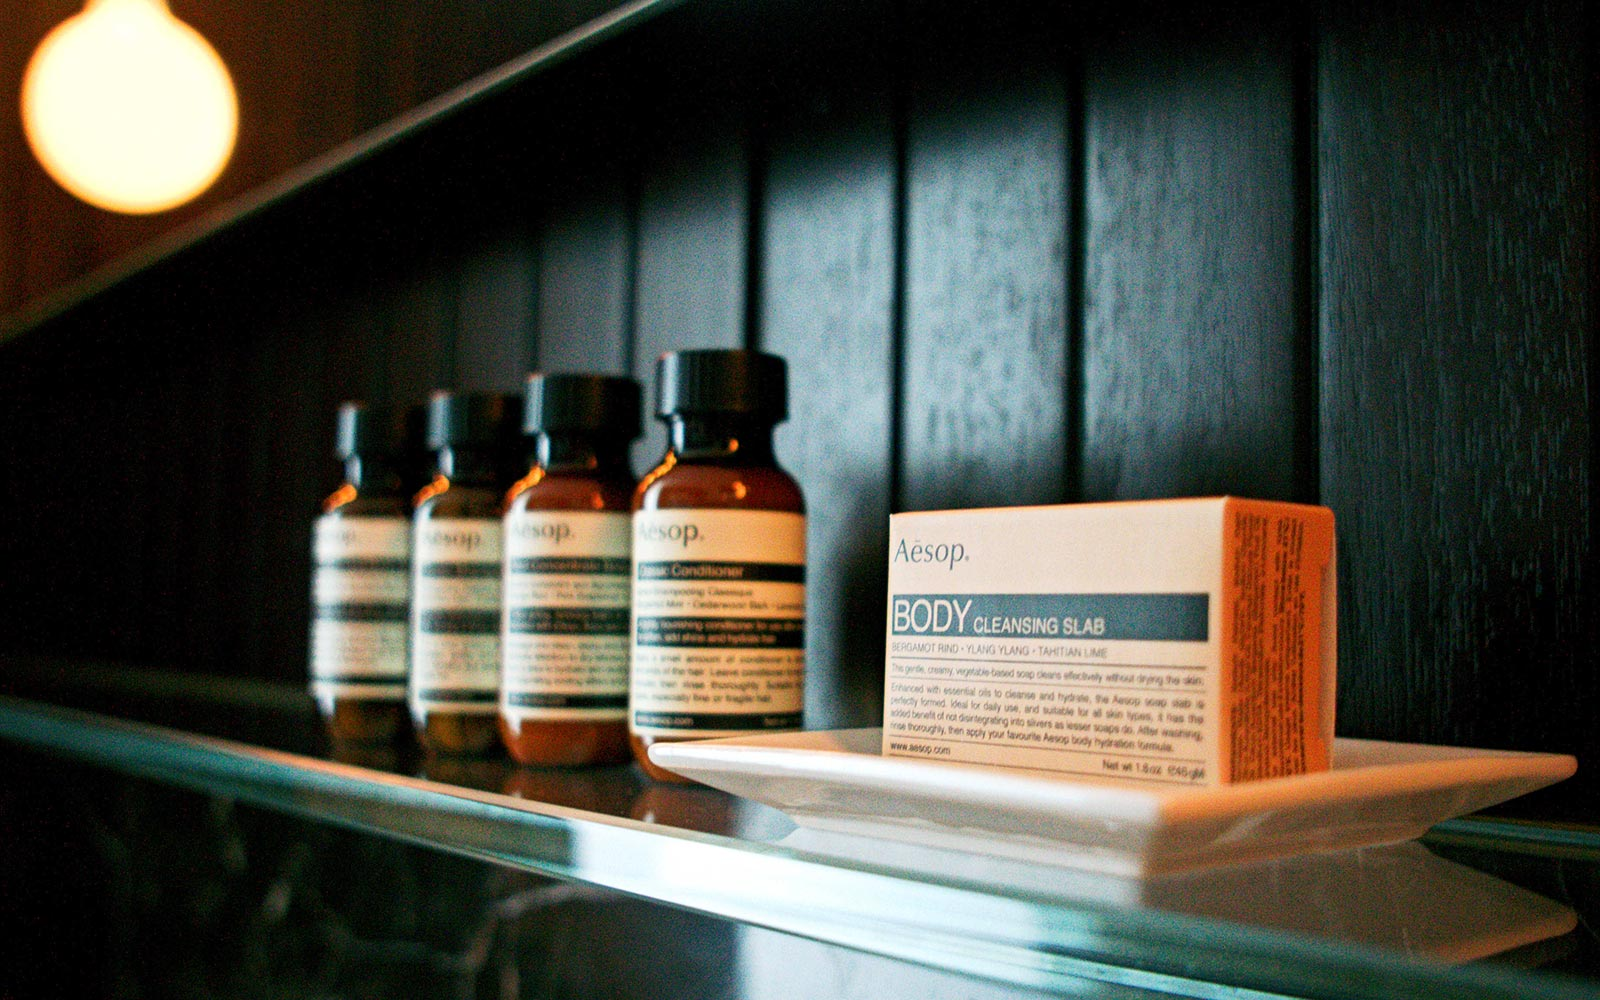 Aesop, Gramercy Park Hotel, New York City